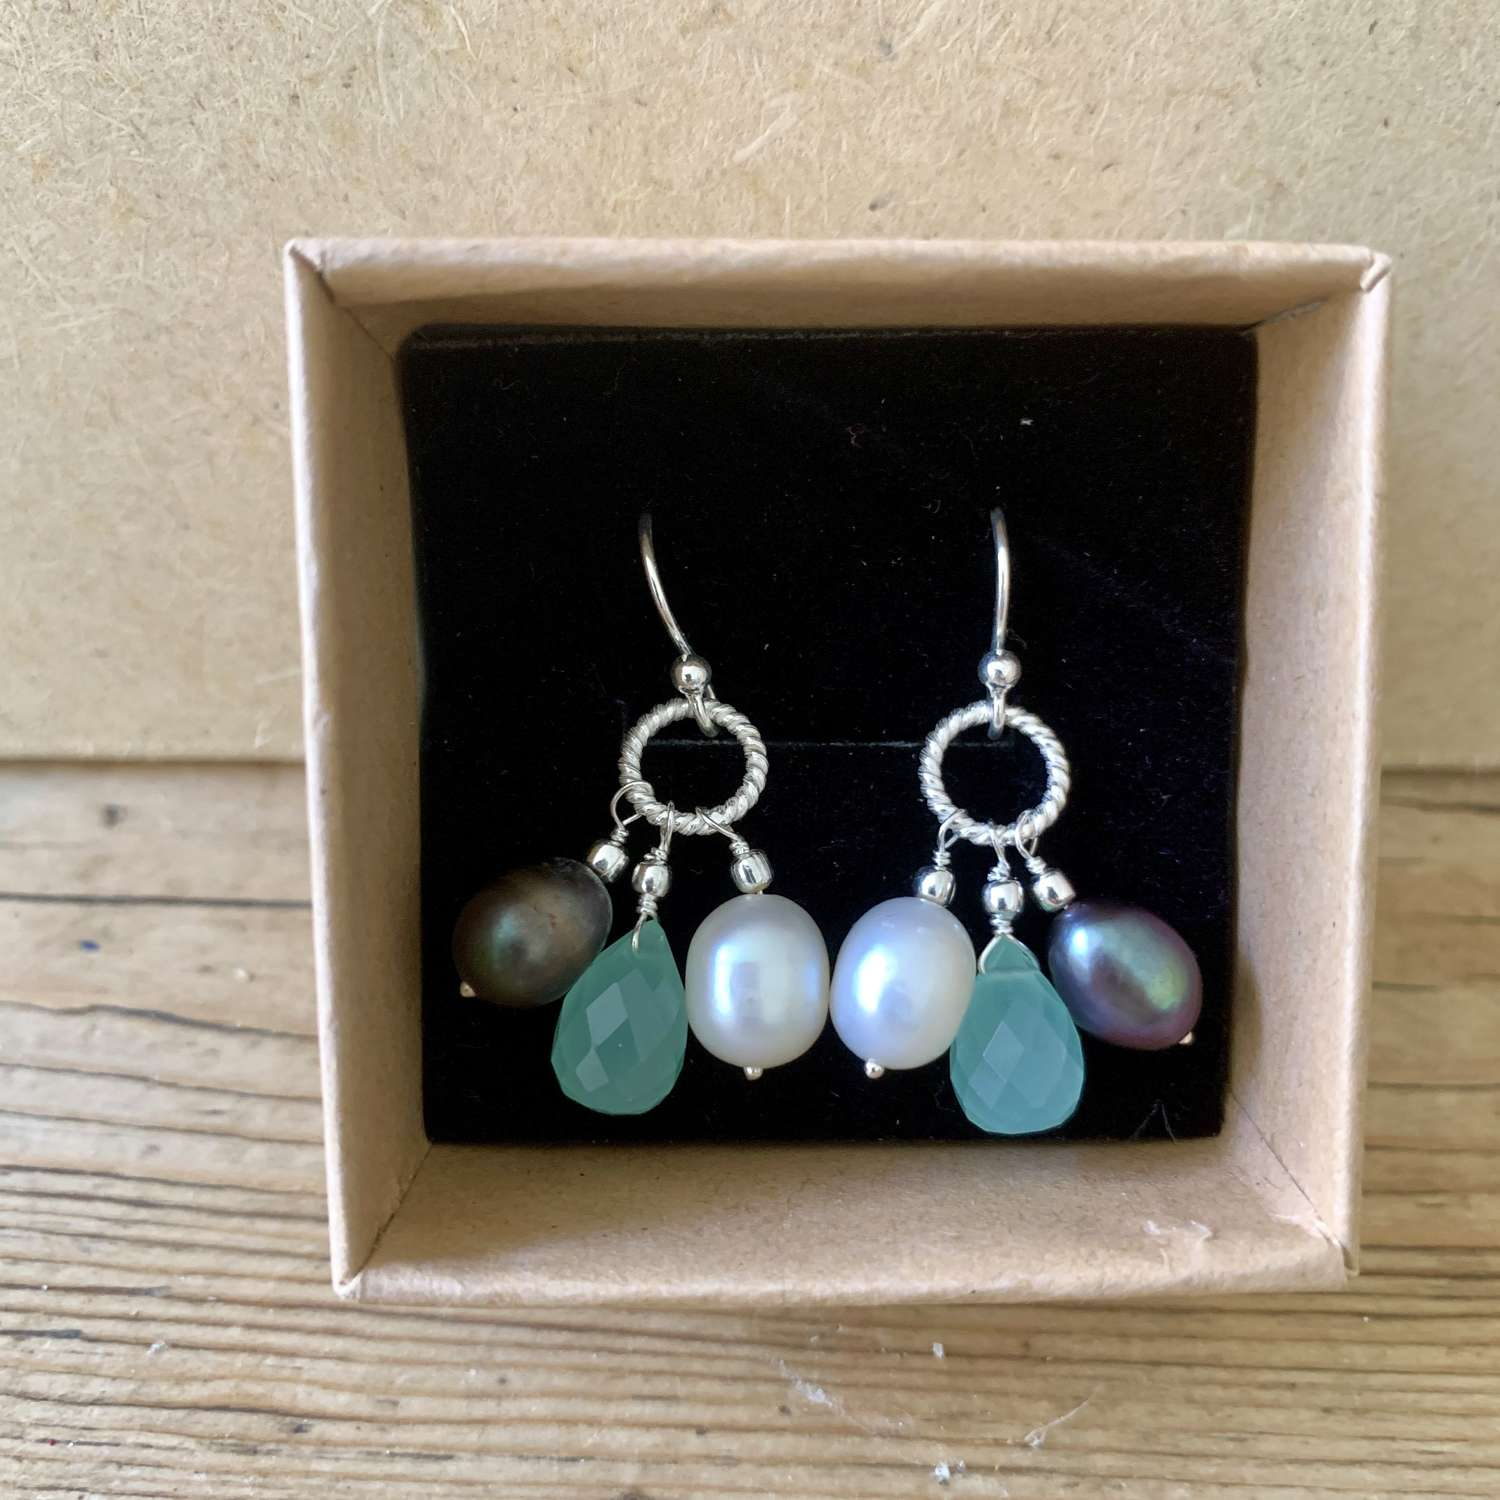 Silver earrings with pearls and semi-precious stones